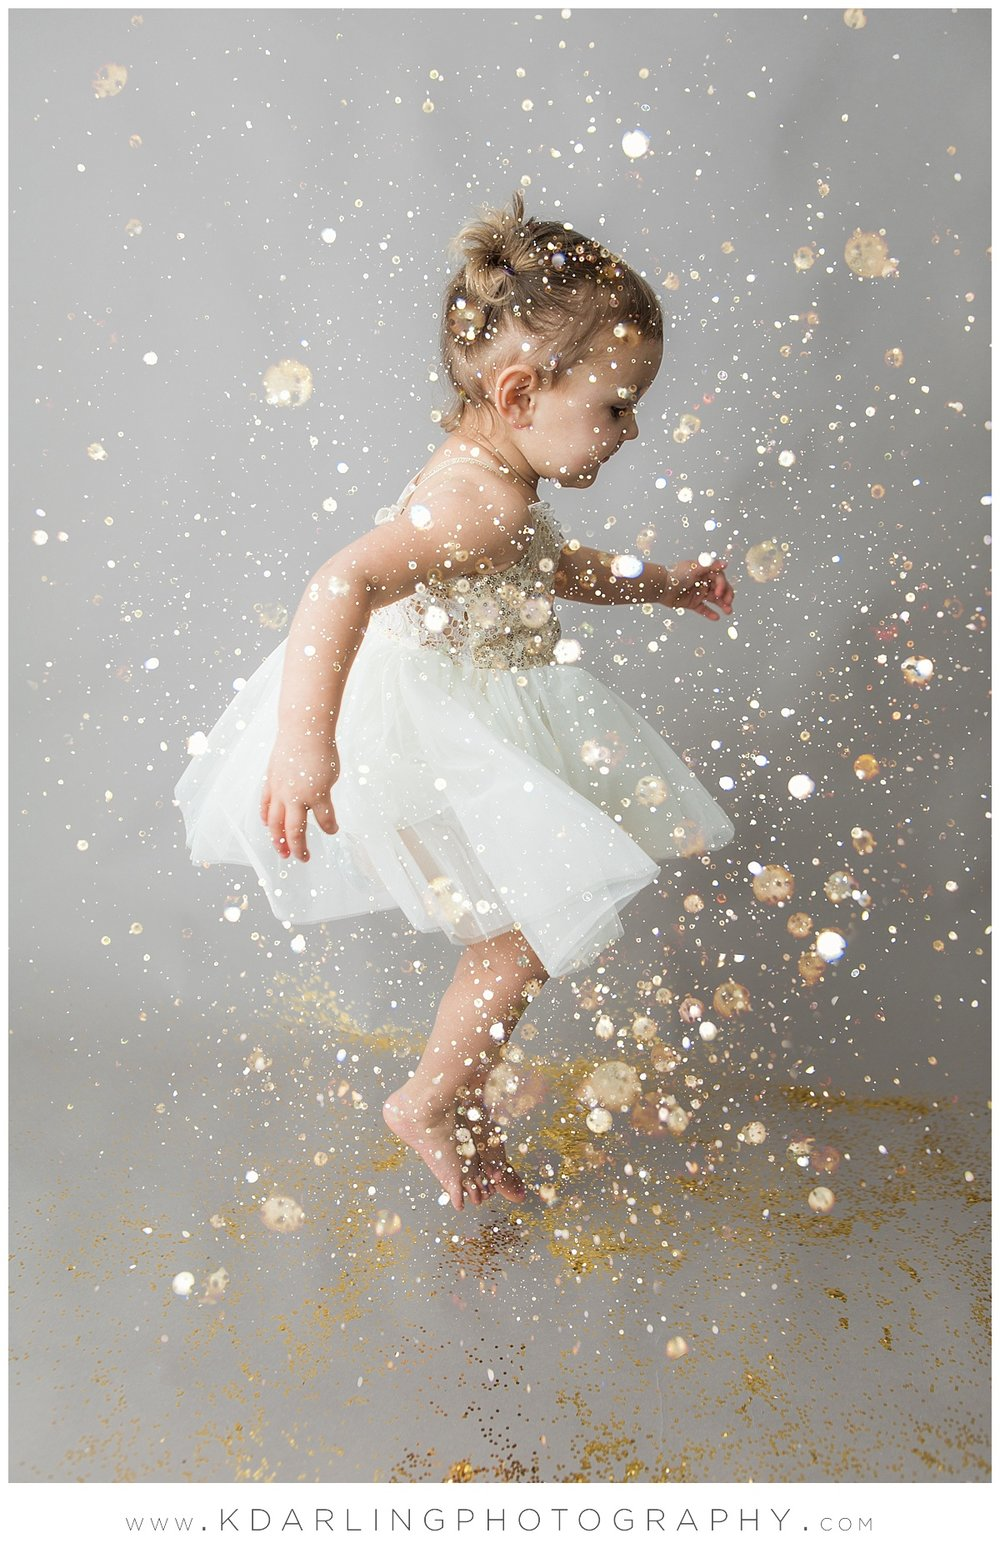 Two year old jumping in glitter